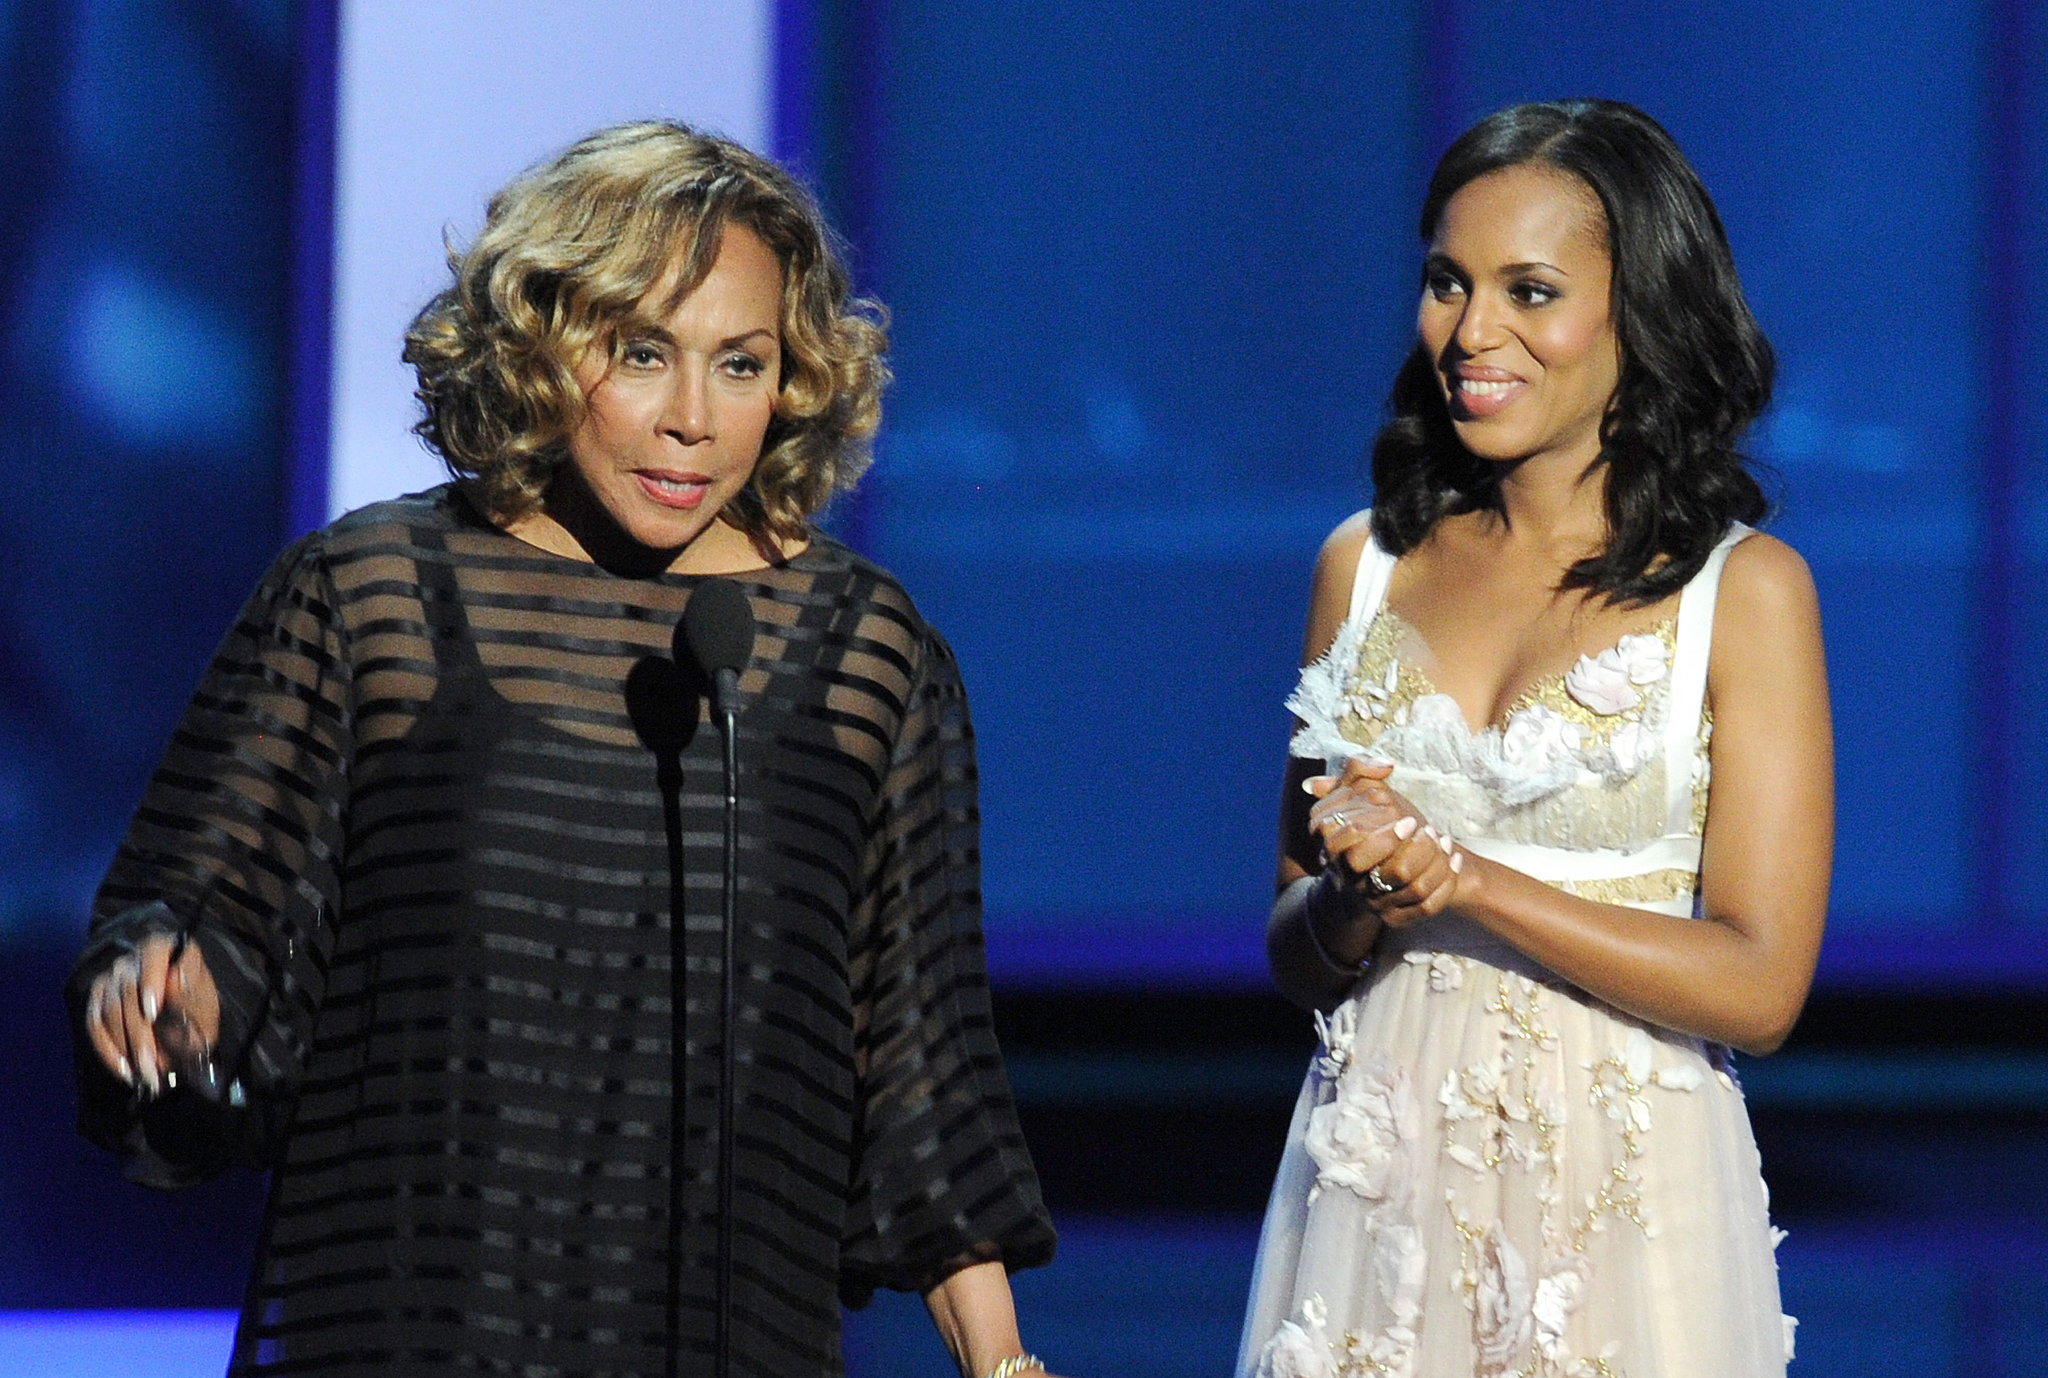 Diahann Carroll — the first African American to win an Emmy — spoke alongside Kerry Washington.